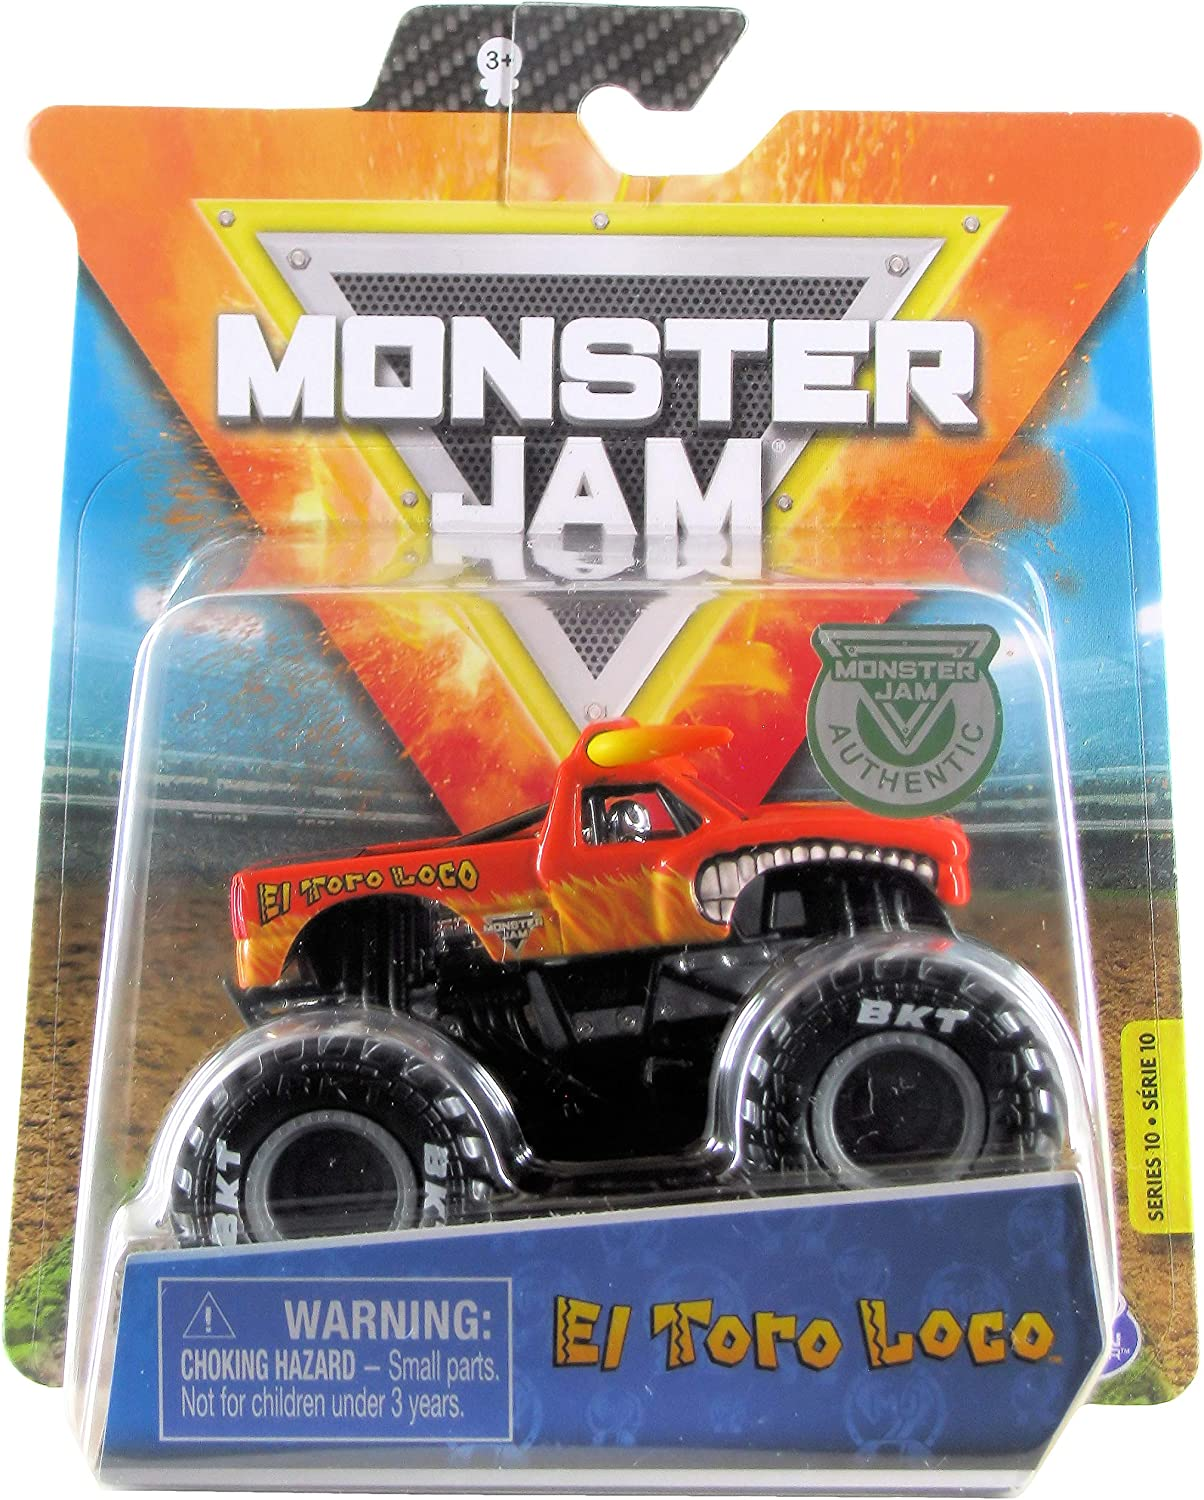 Amazon Com Monster Jam 2020 Spin Master 1 64 Diecast Monster Truck With Wristband Legacy Trucks El Toro Loco Orange Toys Games